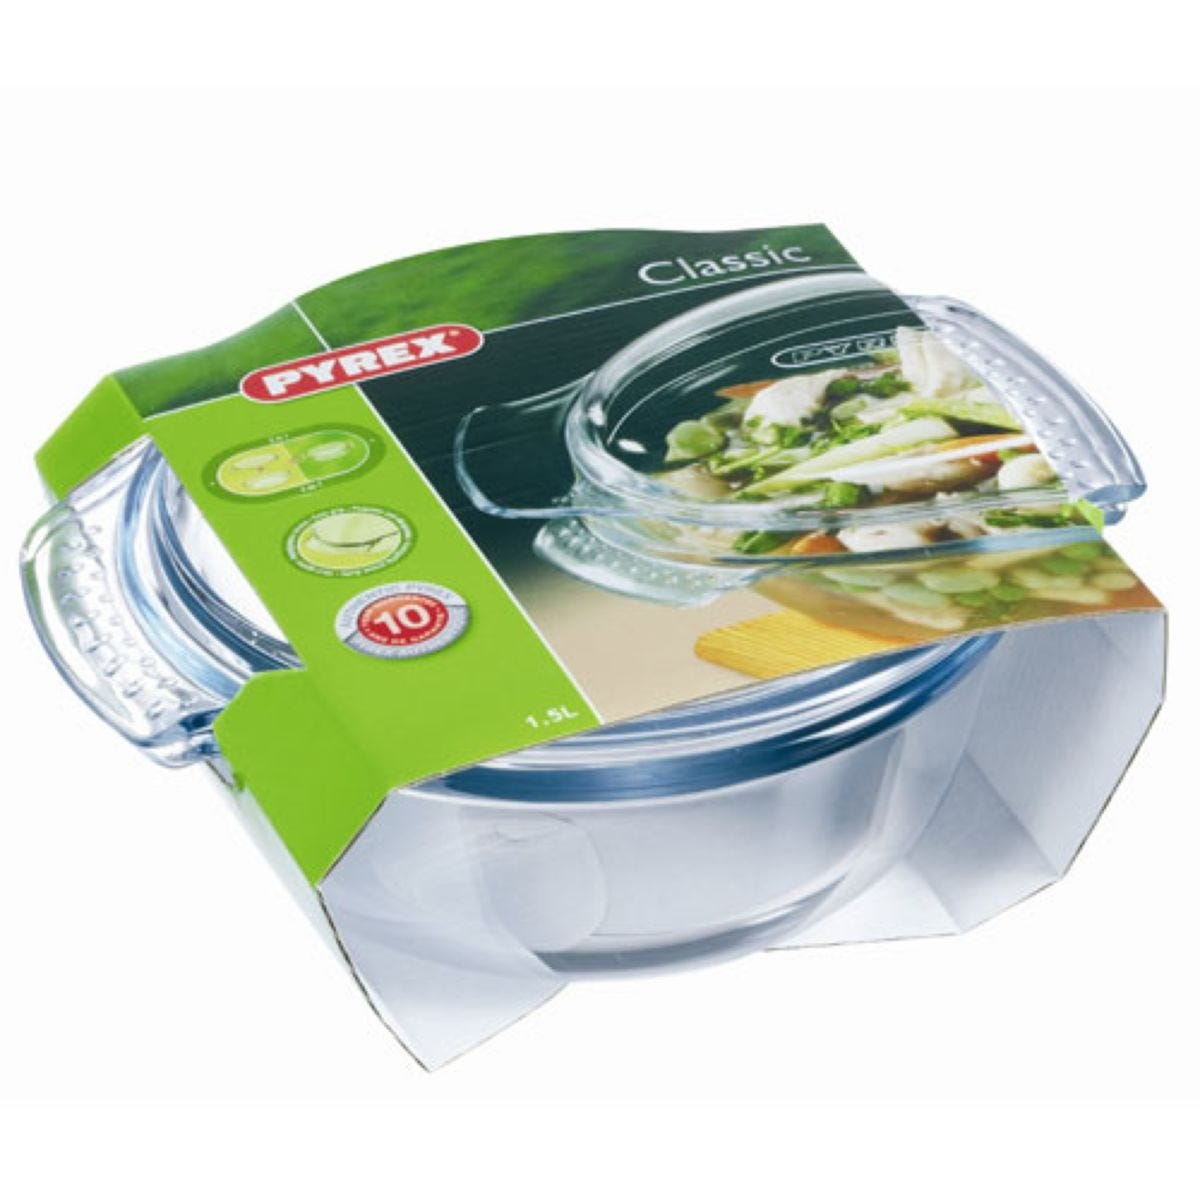 Pyrex Round Glass Casserole with Lid - 2.1L